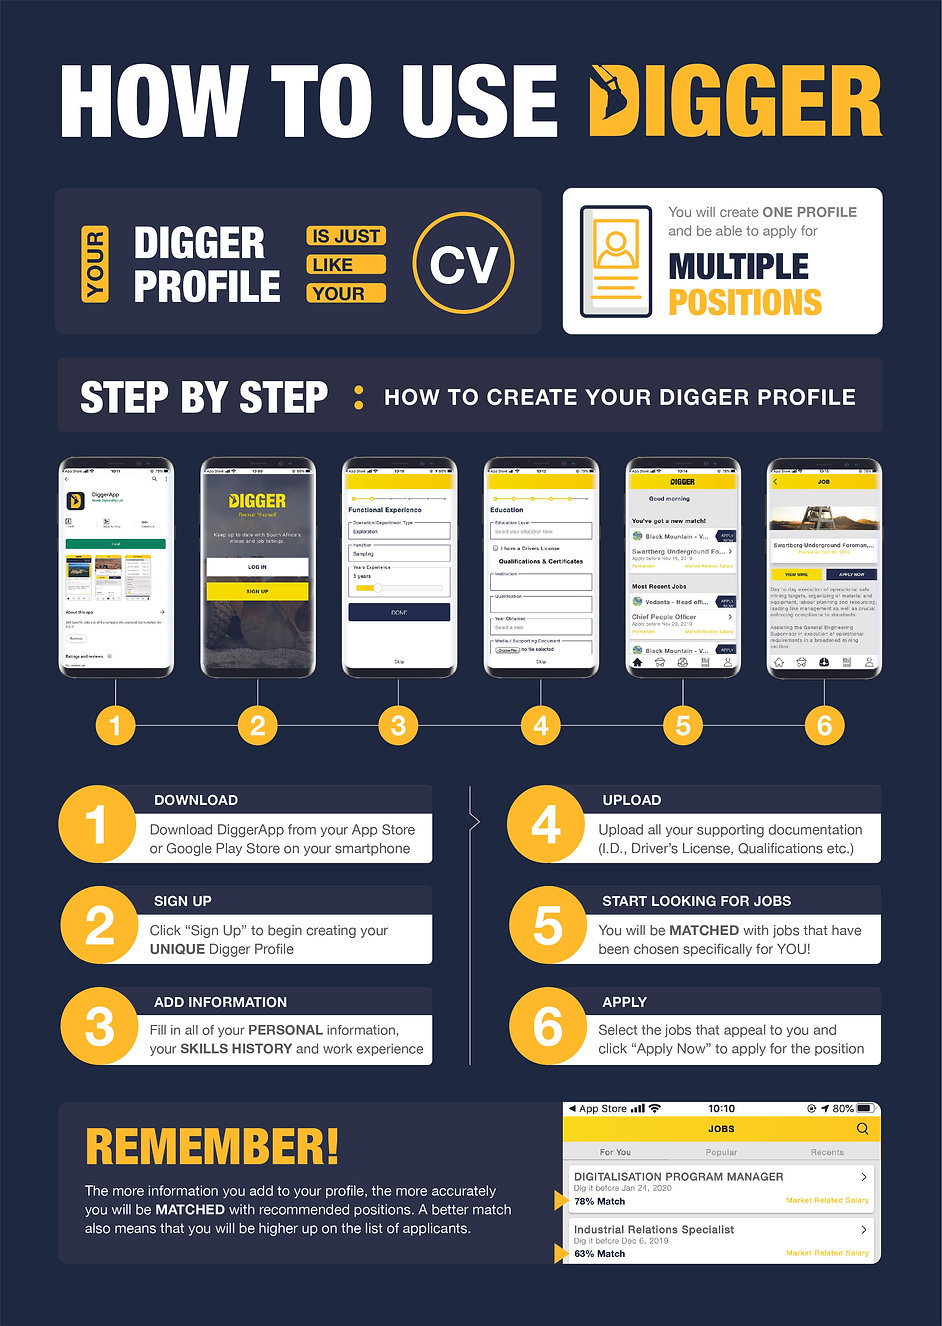 DIGGER_HowTo_Infographic_A2_v2.jpg